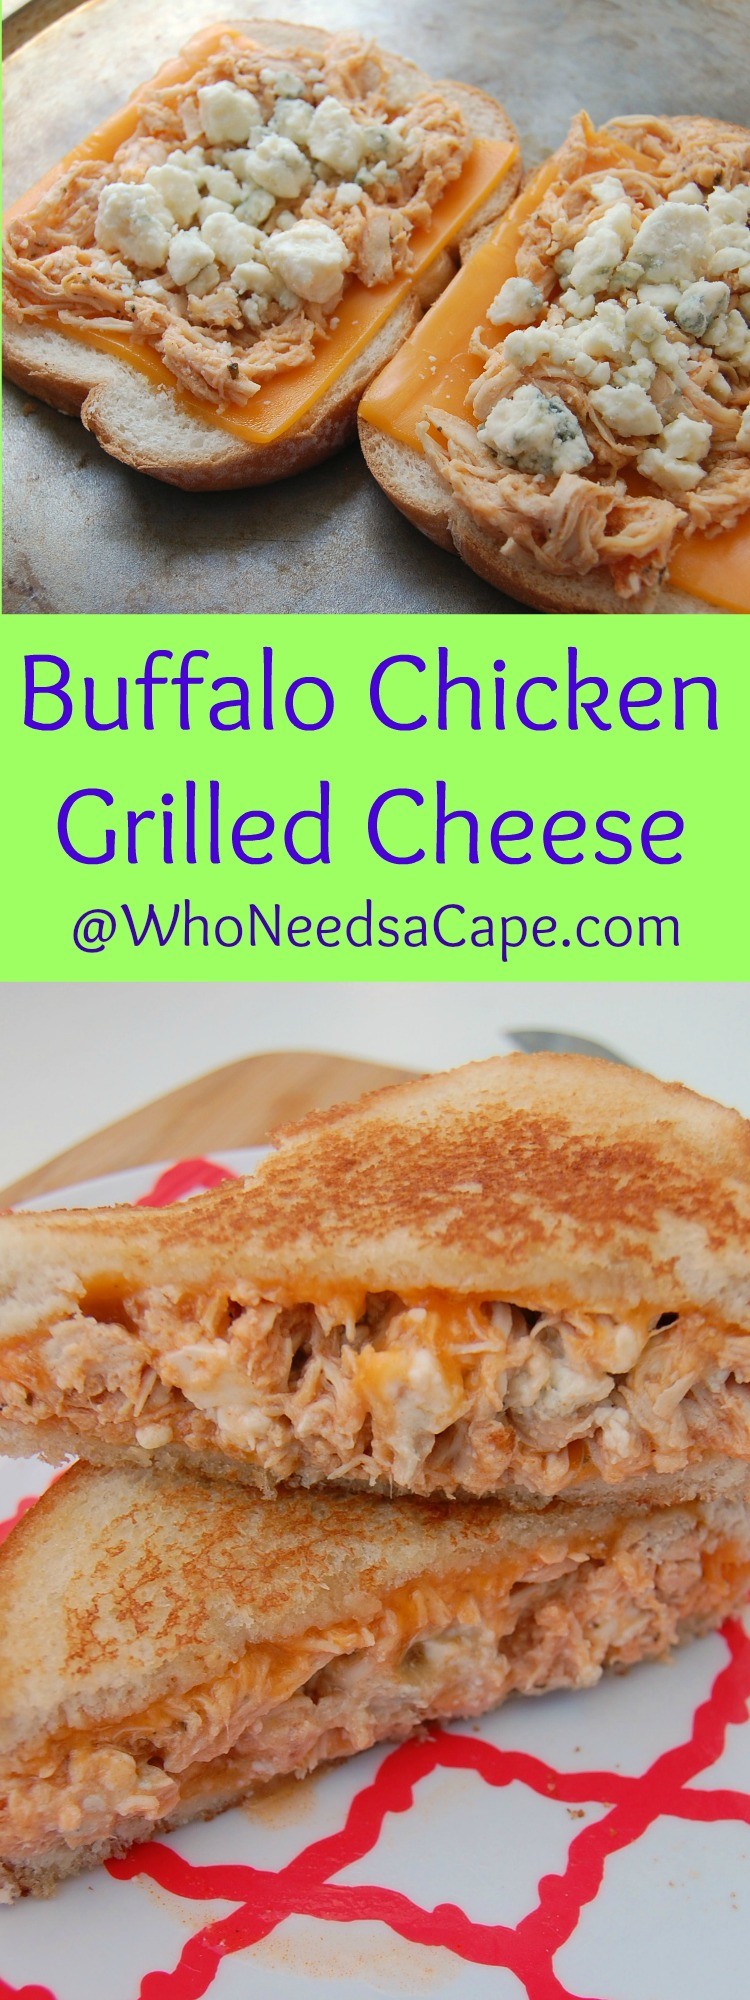 Make Buffalo Chicken in your Slow Cooker and then amaze your family by making it Grilled Cheese - comfort food the way it should be made!